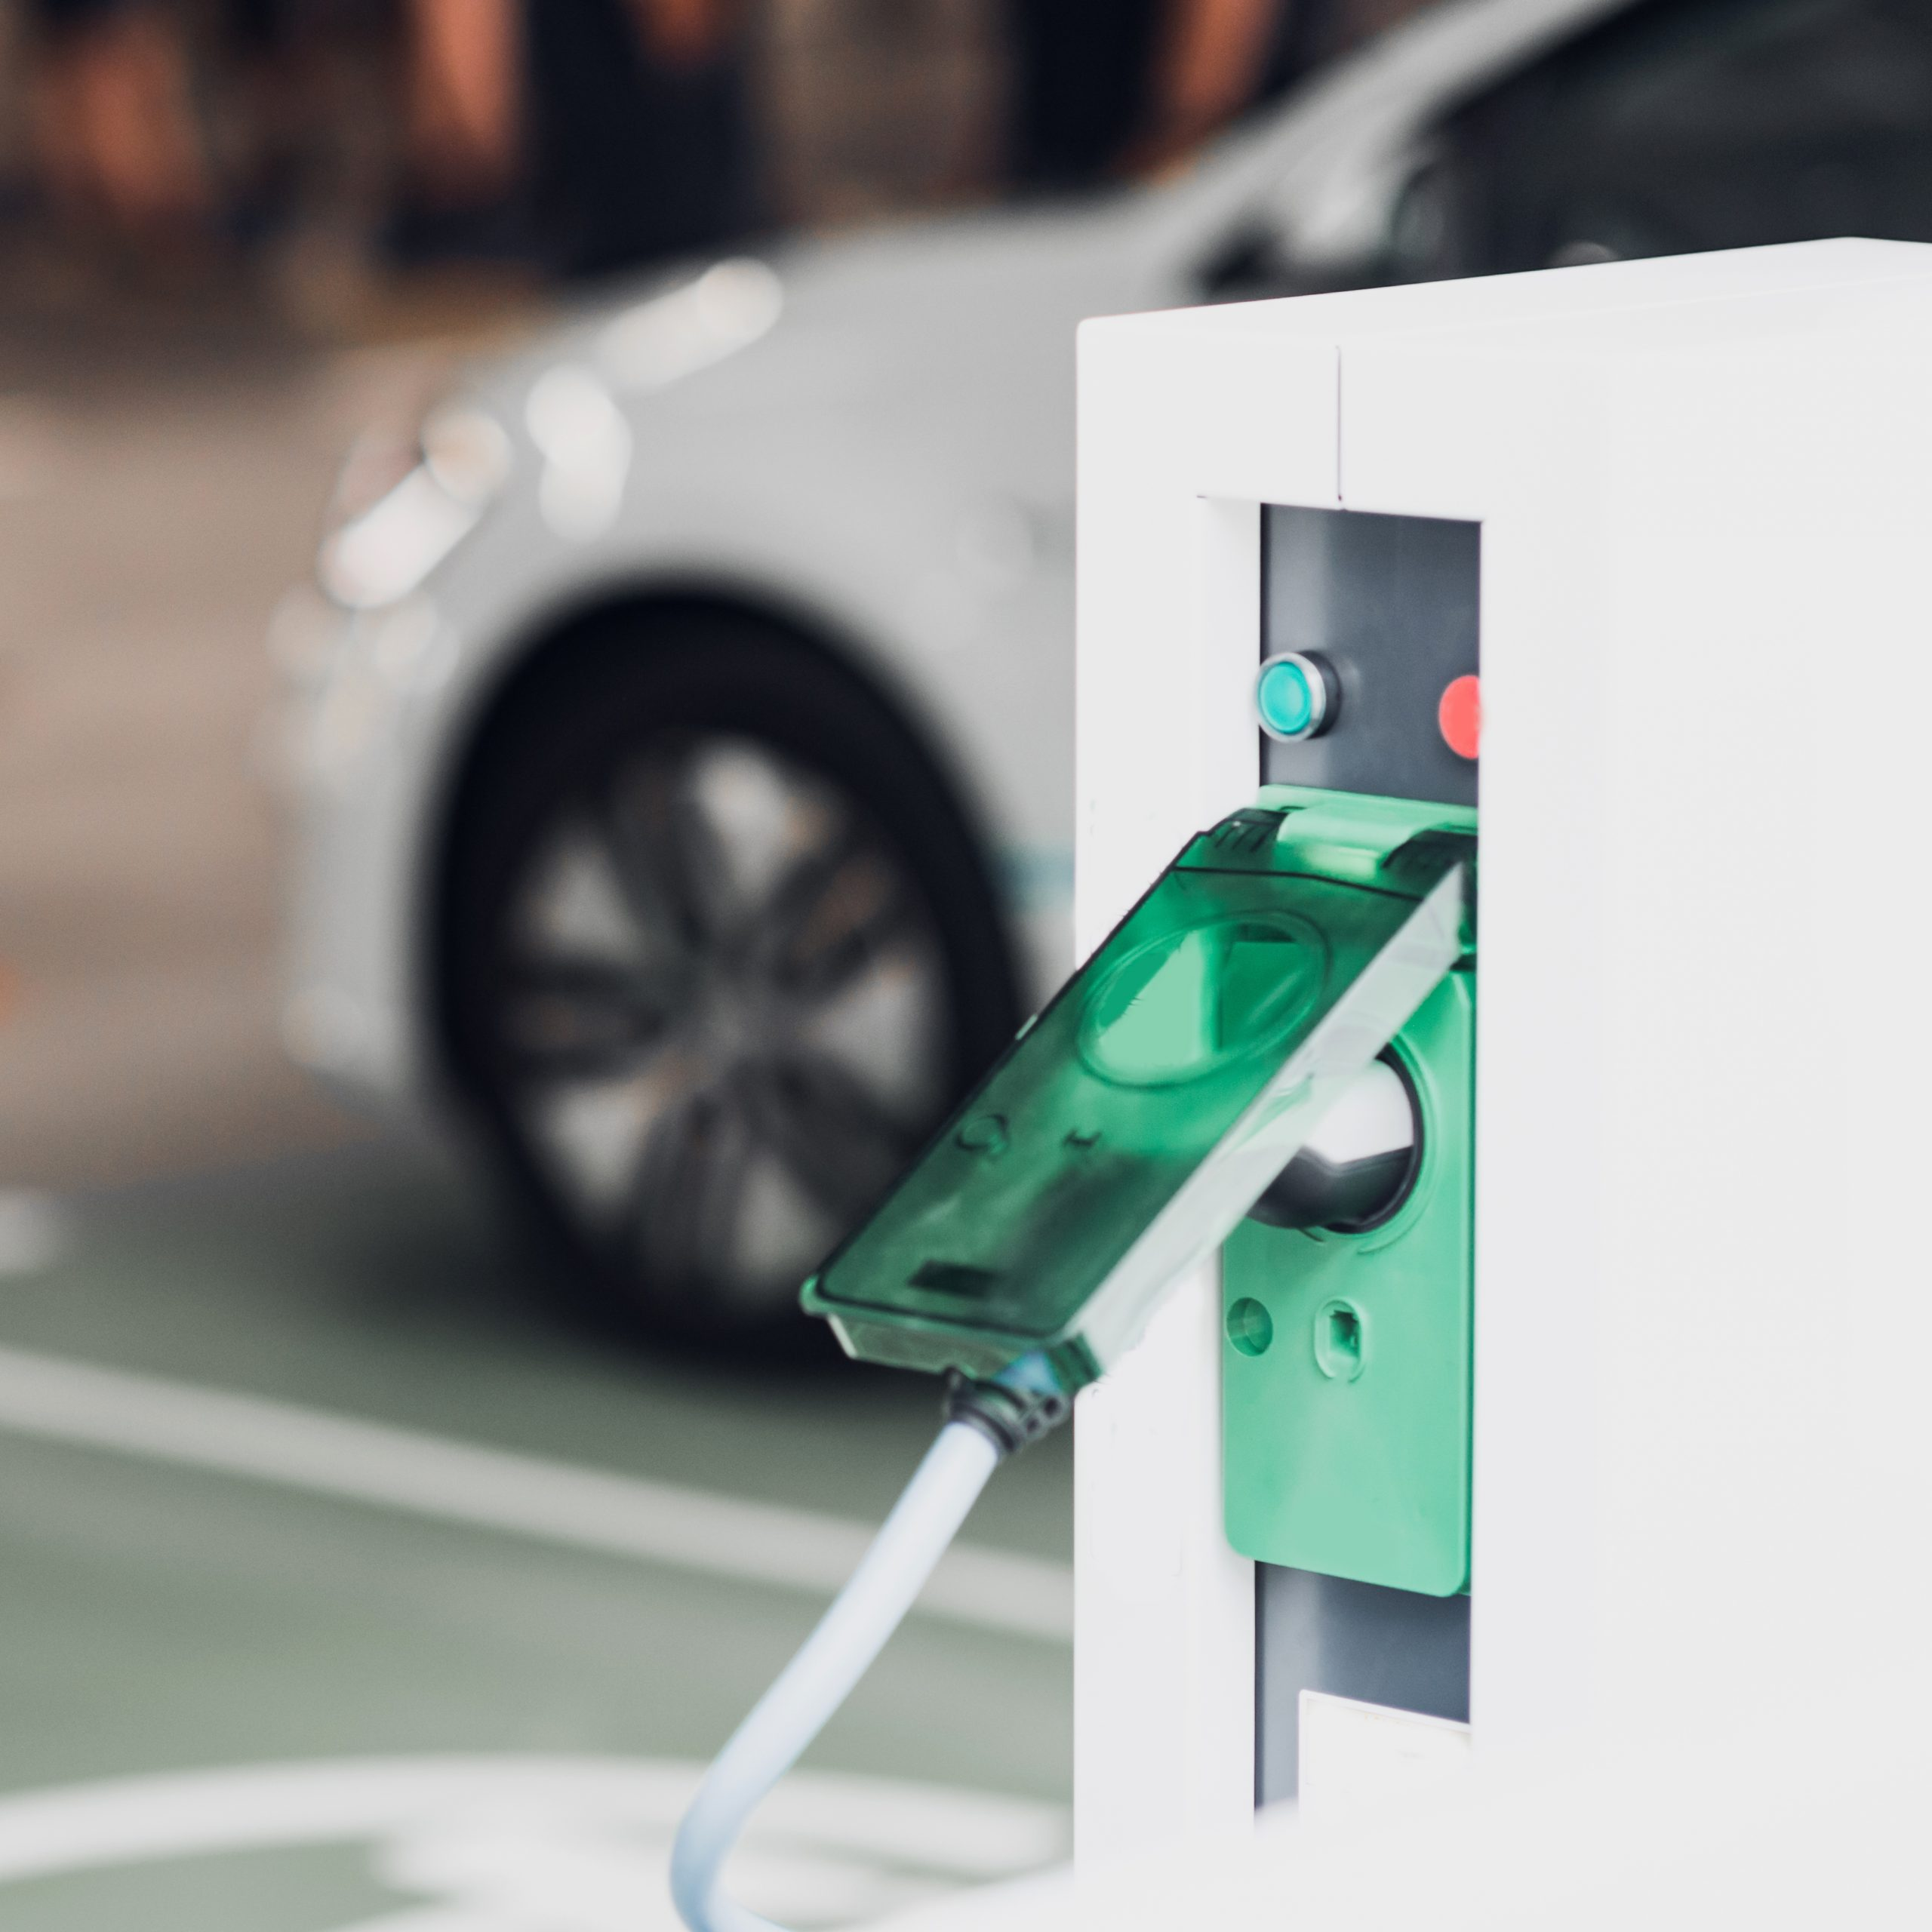 Electric vehicle charging station with EV in background